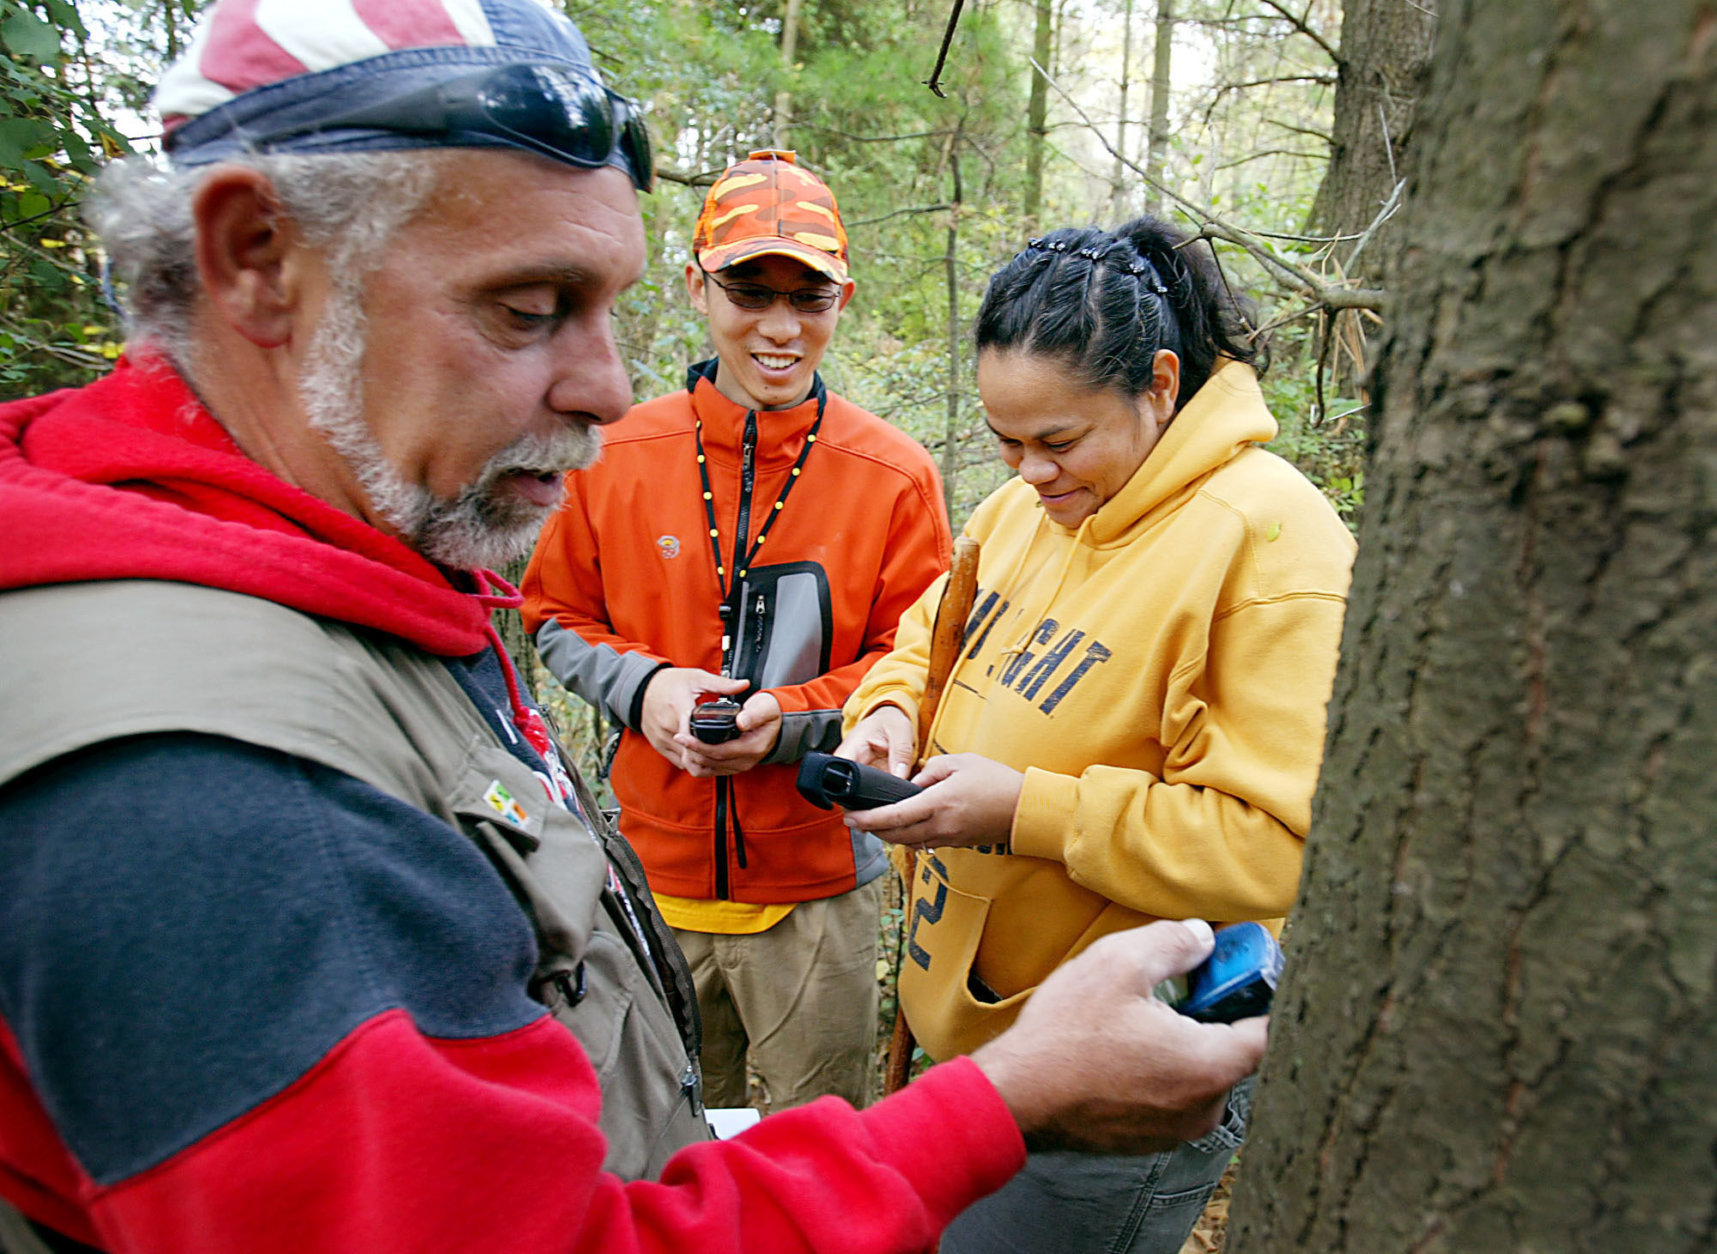 Geocachers Bob Rathbone, left, Robin Bright, right, and new geocacher Sang Park, center, program the next destination into their GPS units, while searching for caches in the New Munster Wildlife Park, Friday October 21, 2005 in New Munster, Wisconsin.  An estimated one million people worldwide have played the scavenger hunt game that has a high-tech twist. In fact, geocaching is becoming popular enough that numerous states now post online the coordinates of local sites of interest to encourage state tourism. (AP Photo/ Ron Kuenstler)